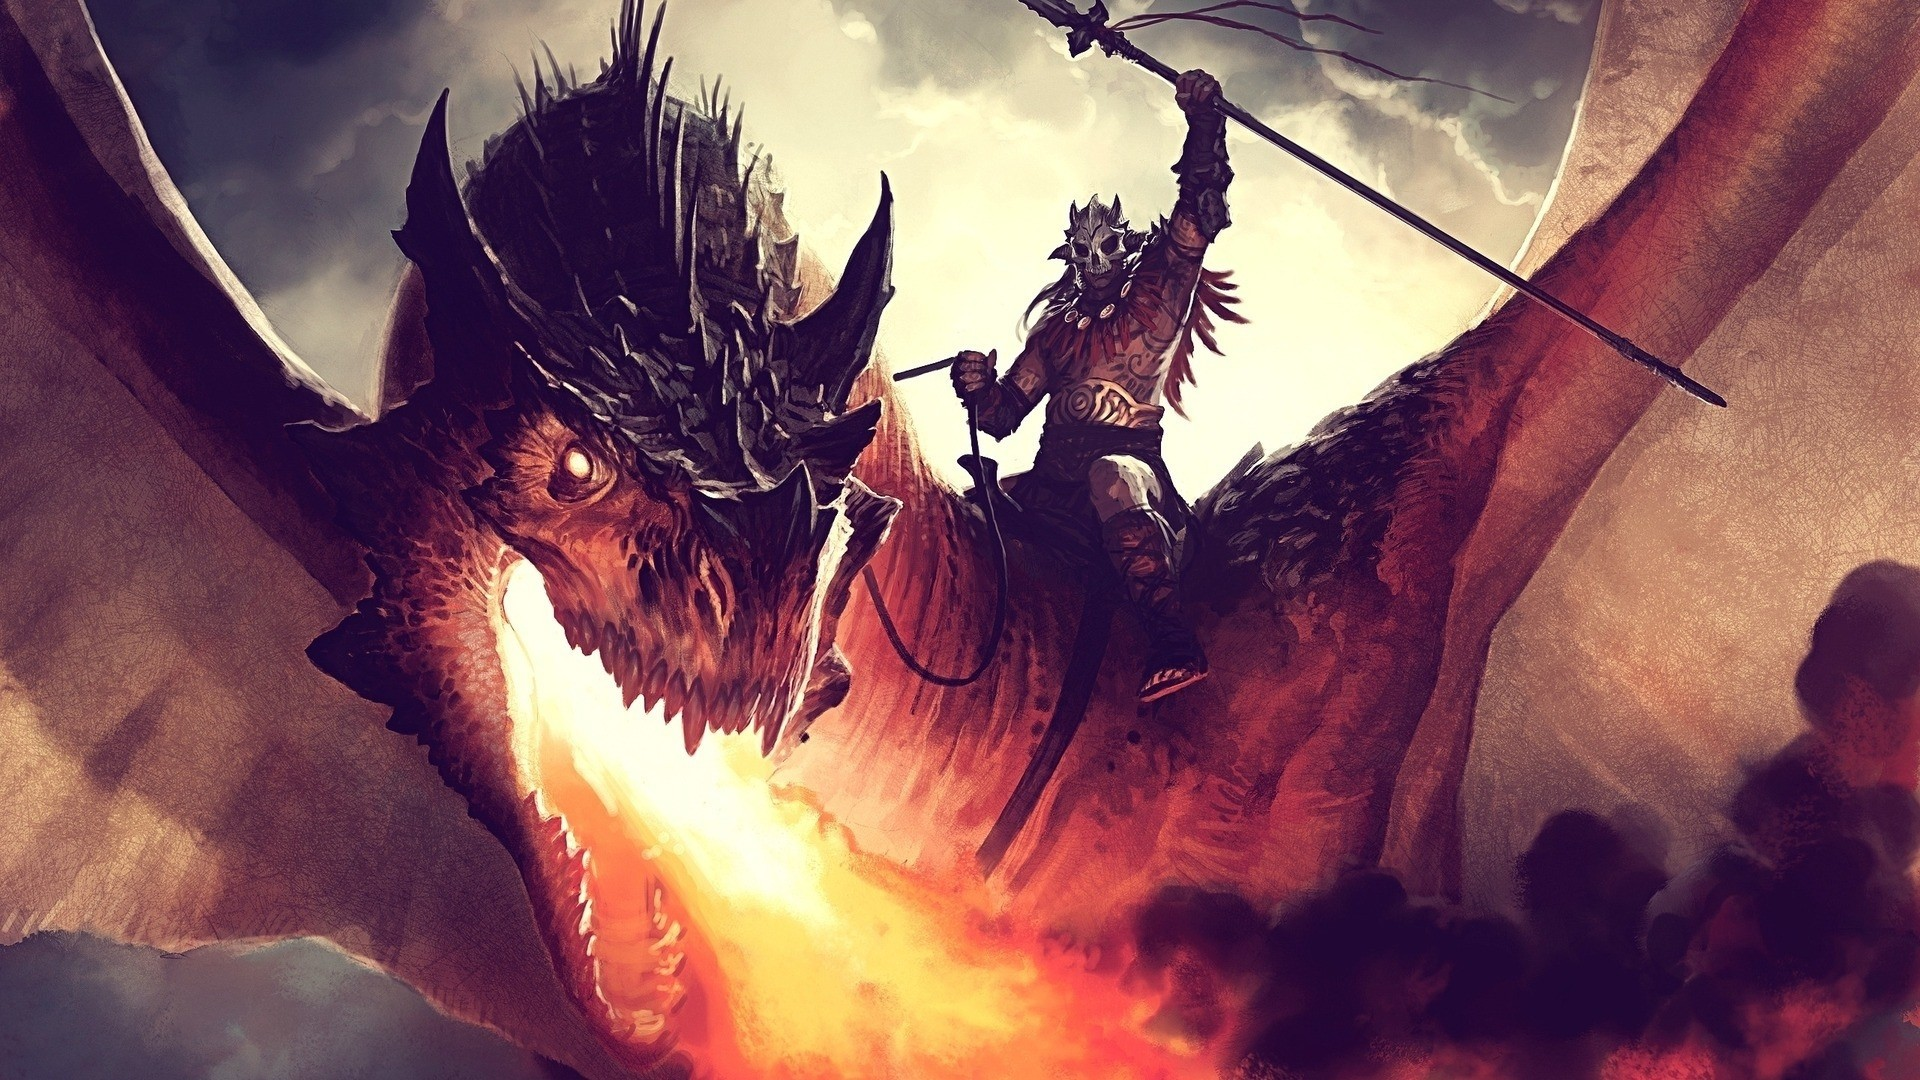 1920x1080 Magic The Gathering Dragon Wallpaper 1920×1080 #21944 HD Wallpaper .